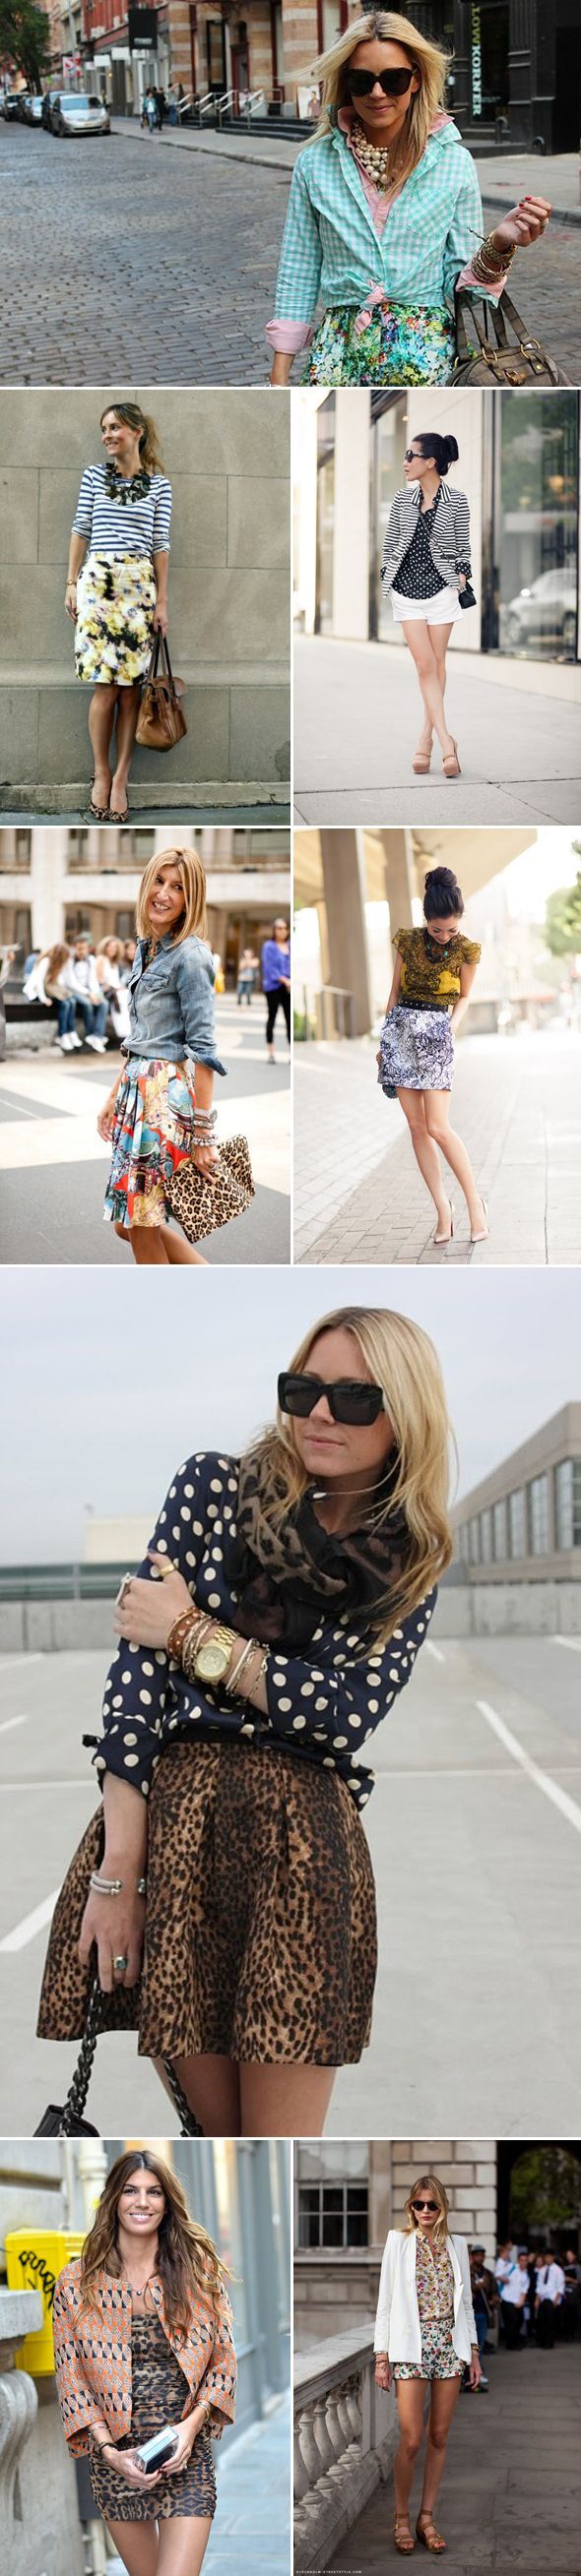 Mixing and Matching Prints, #mix #match #prints #style #fashion, #pant #suit #pantsuit #fall #2012 #style #fashion #trends, via The Style Umbrella Blog